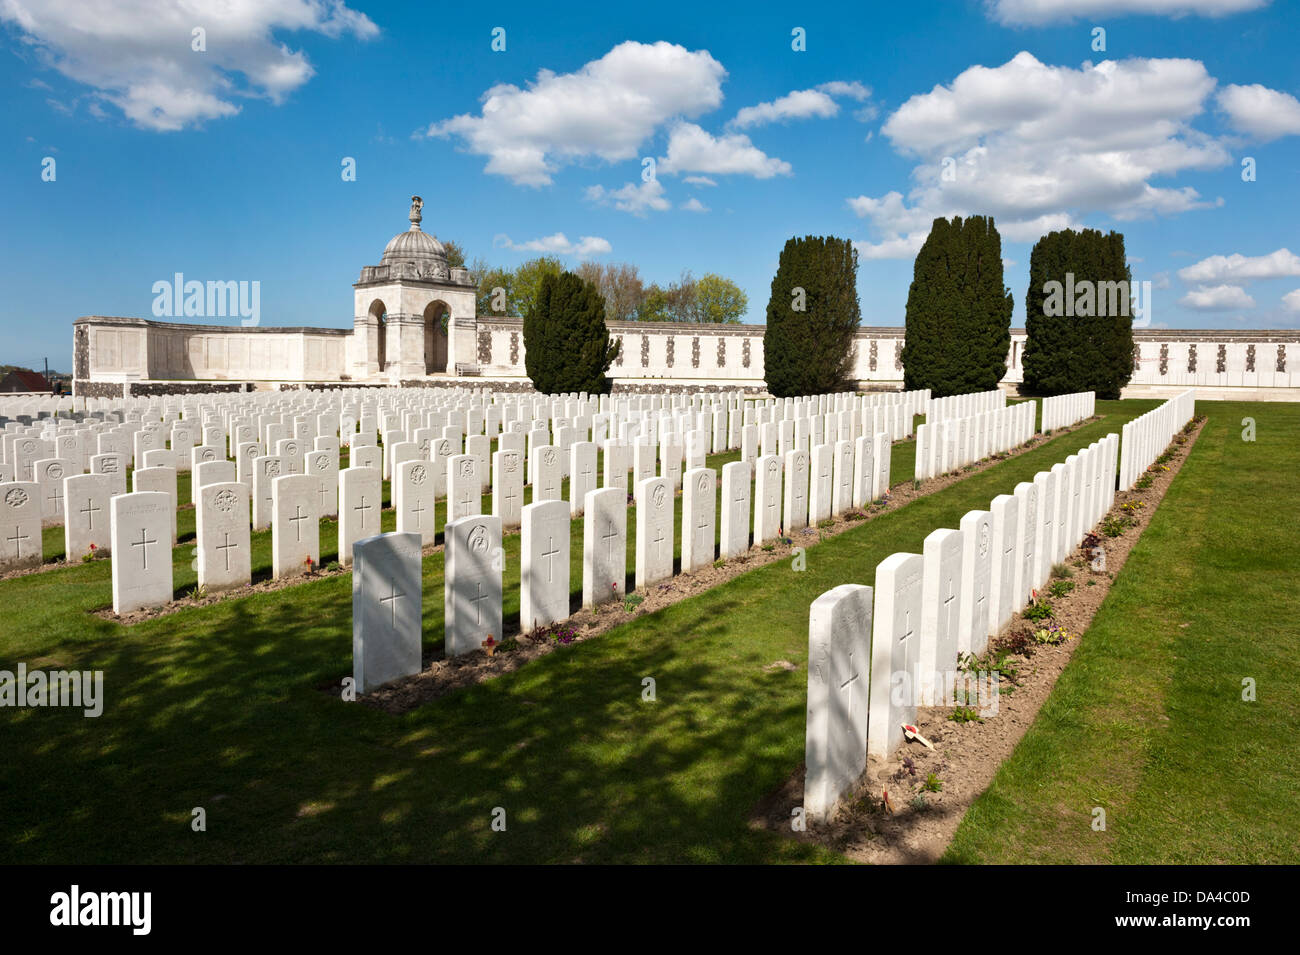 Tyne Cot, Commonwealth War Graves Cemetery, Ypres, Belgium. - Stock Image